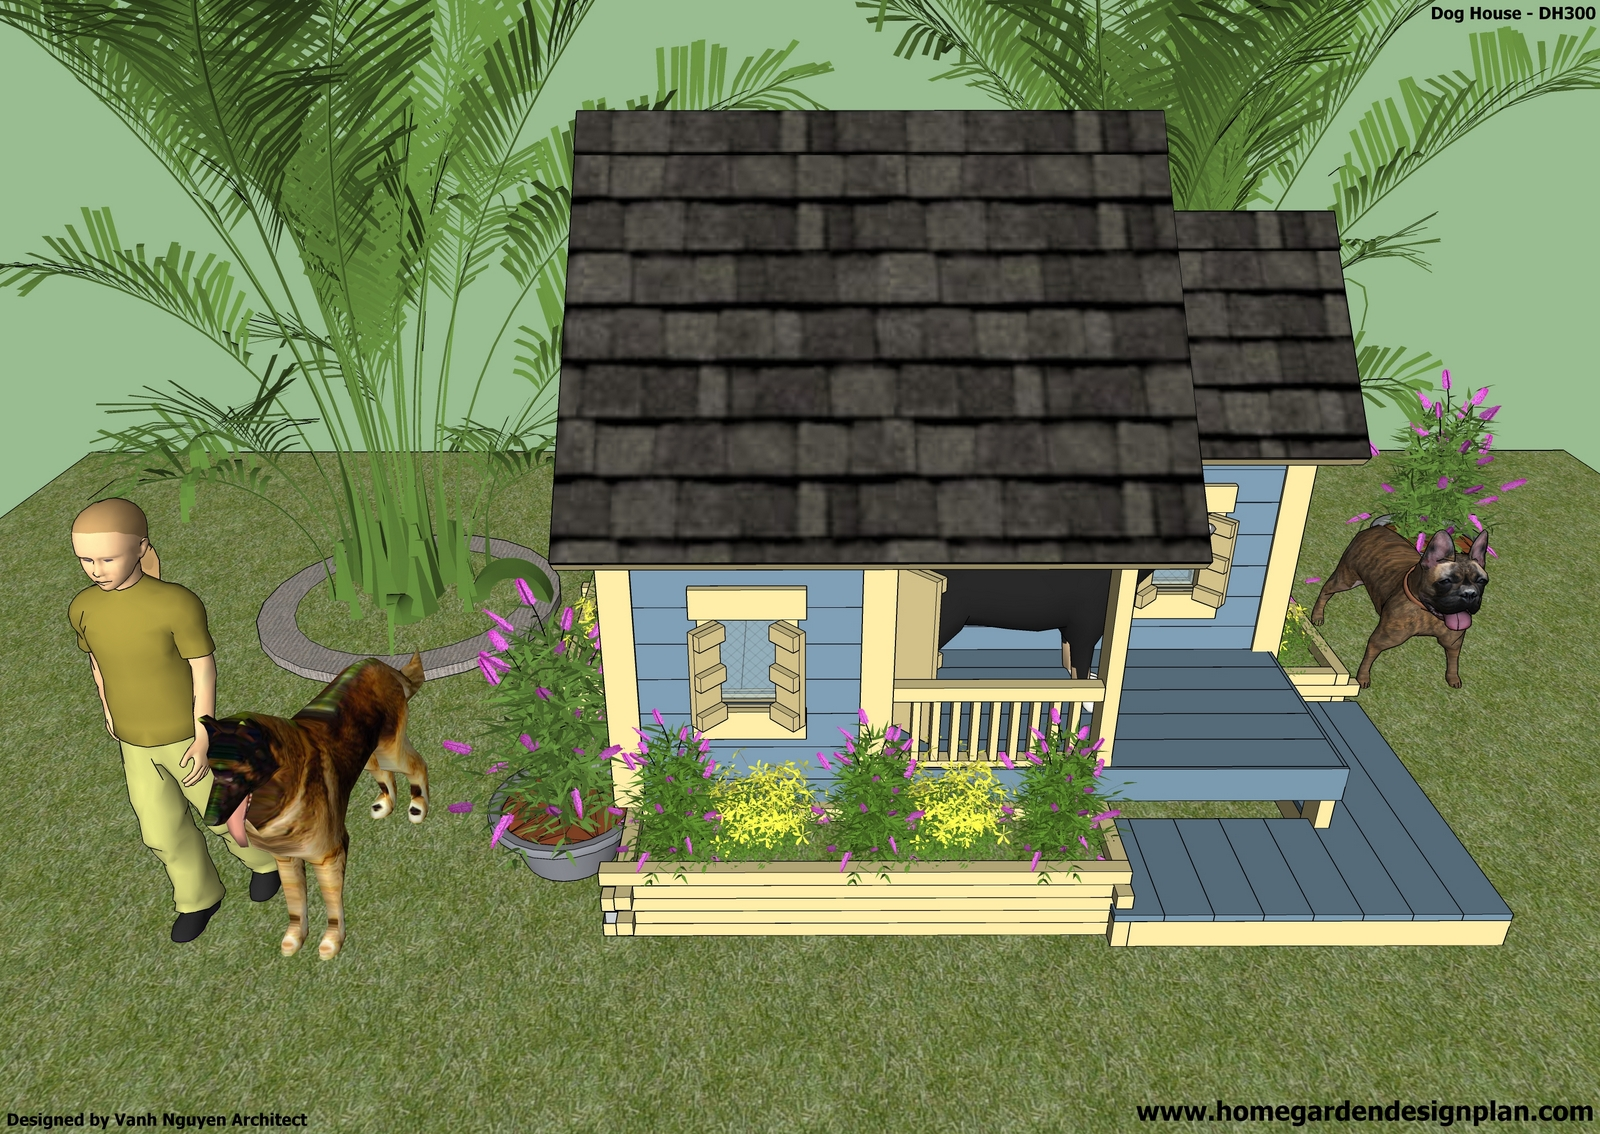 home garden plans: DH300 - Dog House Plans Free - How to Build an ...